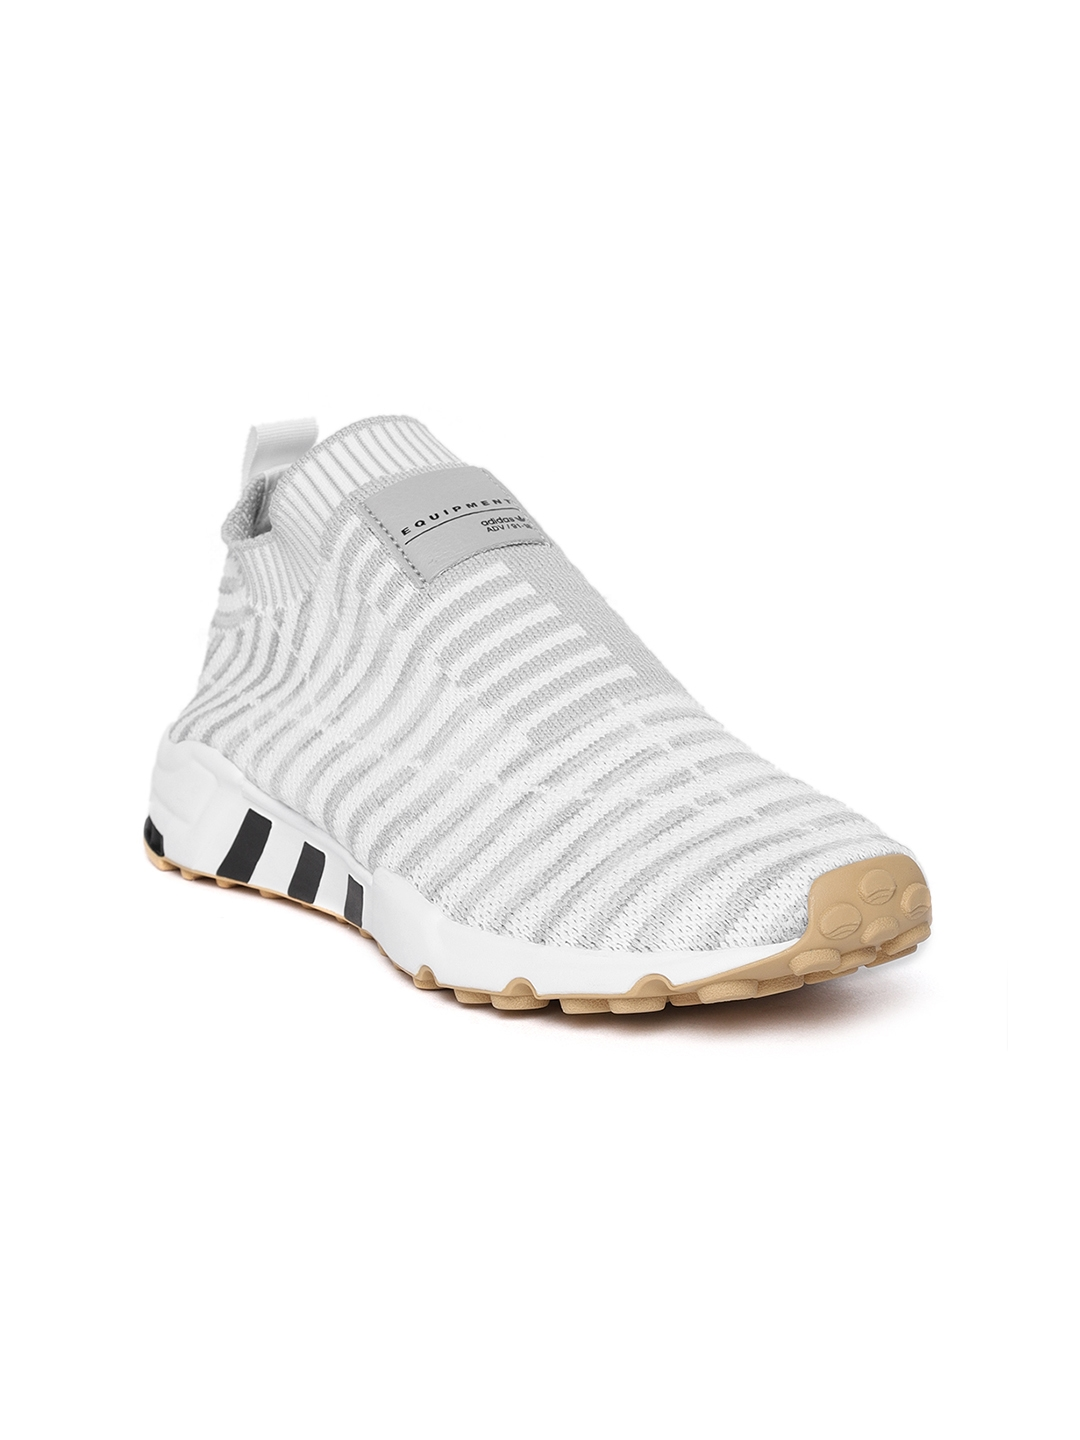 detailed look fe2dd e8cf2 ADIDAS Originals Women White & Grey EQT Support SK Primeknit Slip-On  Sneakers